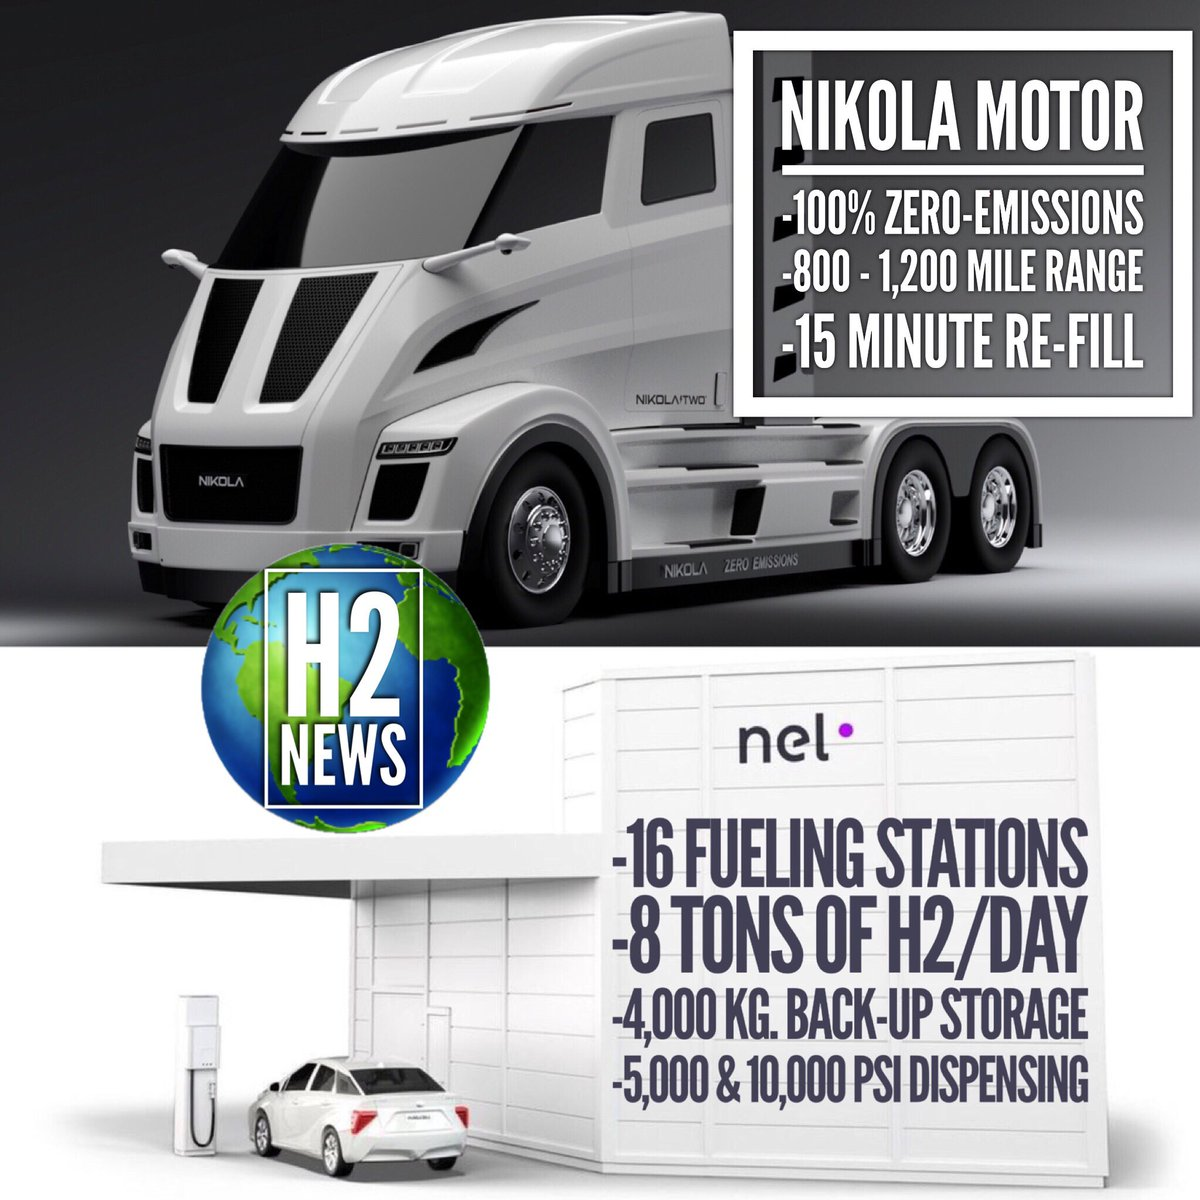 #Nikola Motor has chosen #Nel ASA as their #hydrogen station supplier. Nel received purchase orders for the initial two stations with 14 to follow. Nel and Nikola will utilize electrolysis to create the #gas. When #h2 is sent through a #fuelcell, the only emission is #water! <br>http://pic.twitter.com/eLAwdXKcET